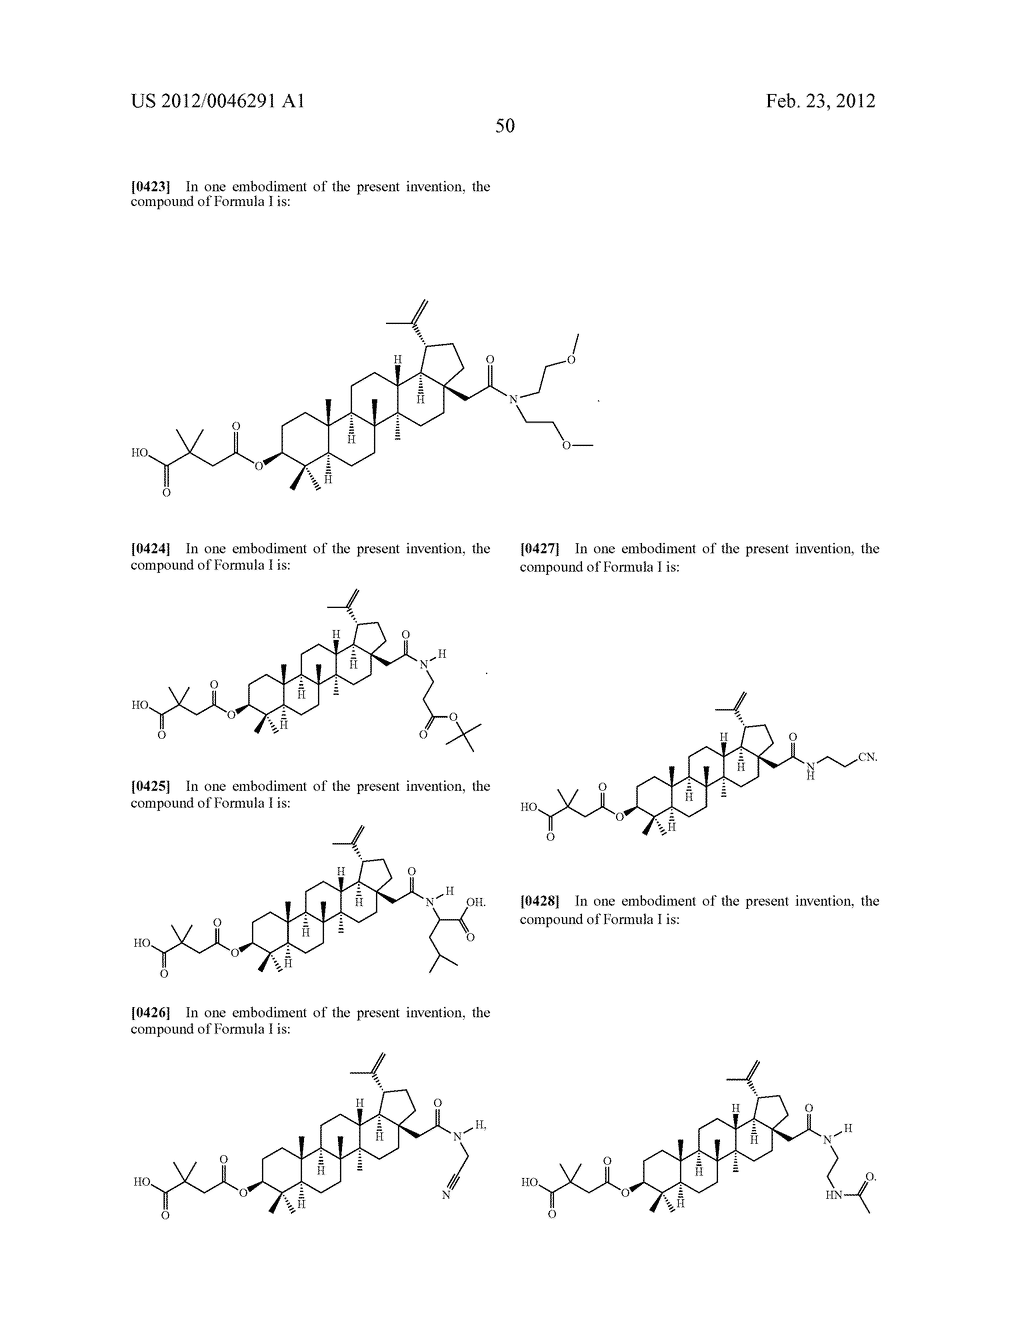 Extended Triterpene Derivatives - diagram, schematic, and image 52